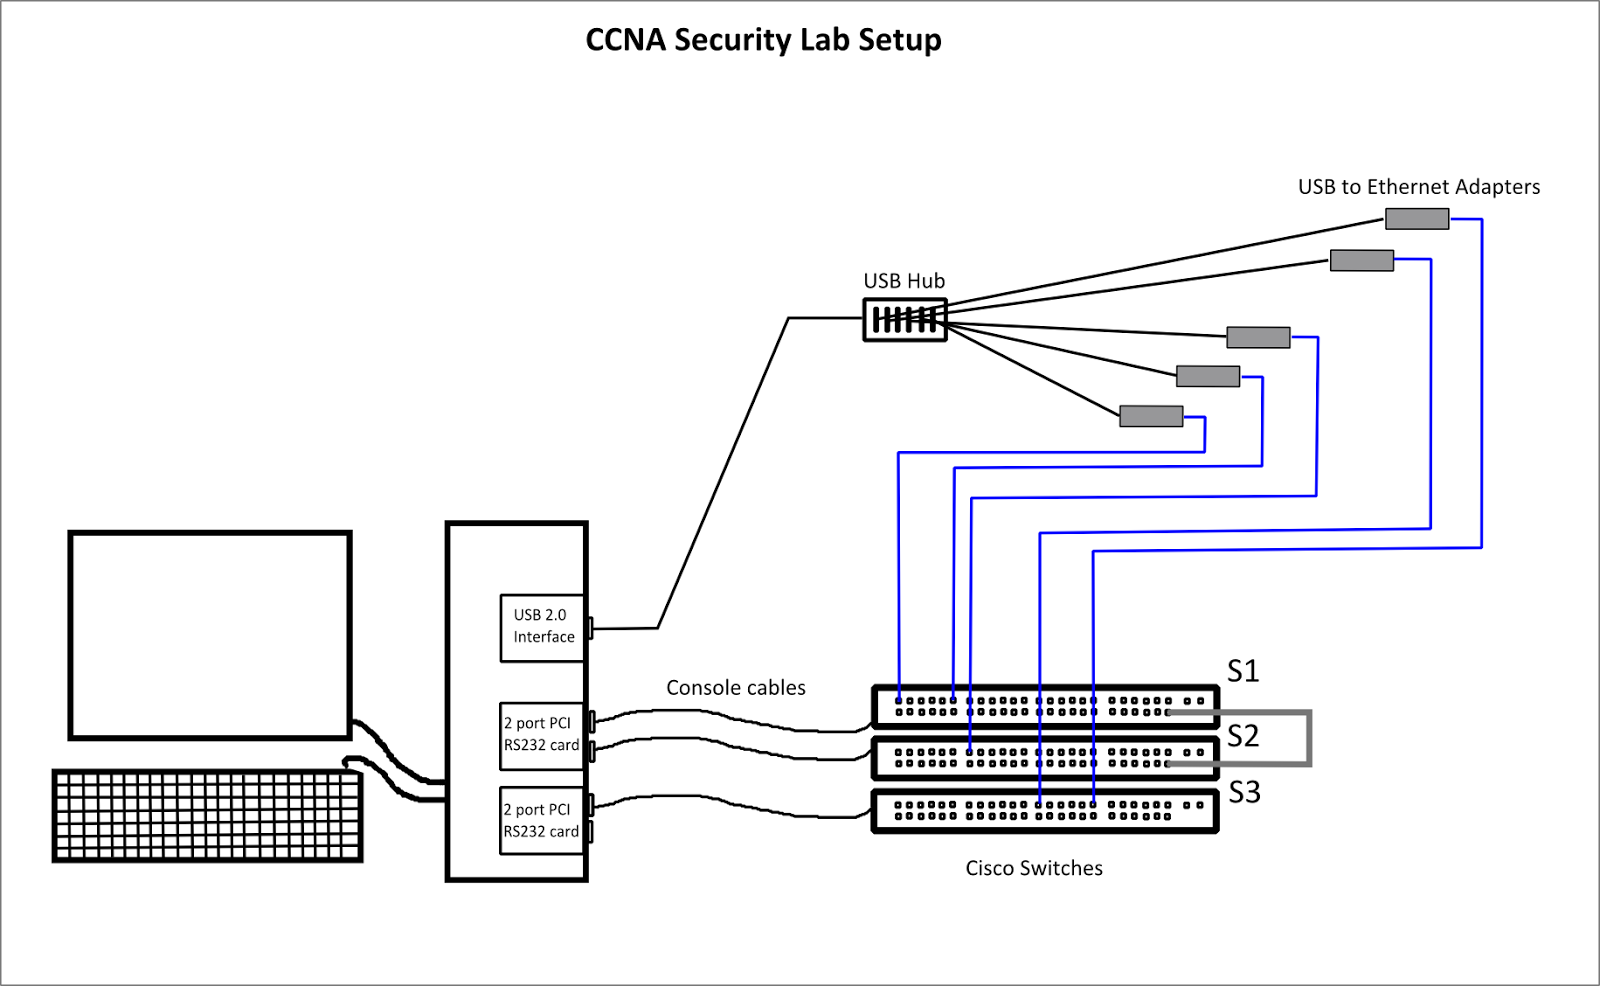 Computer Networking Studies with GNS3: 3. CCNA Security